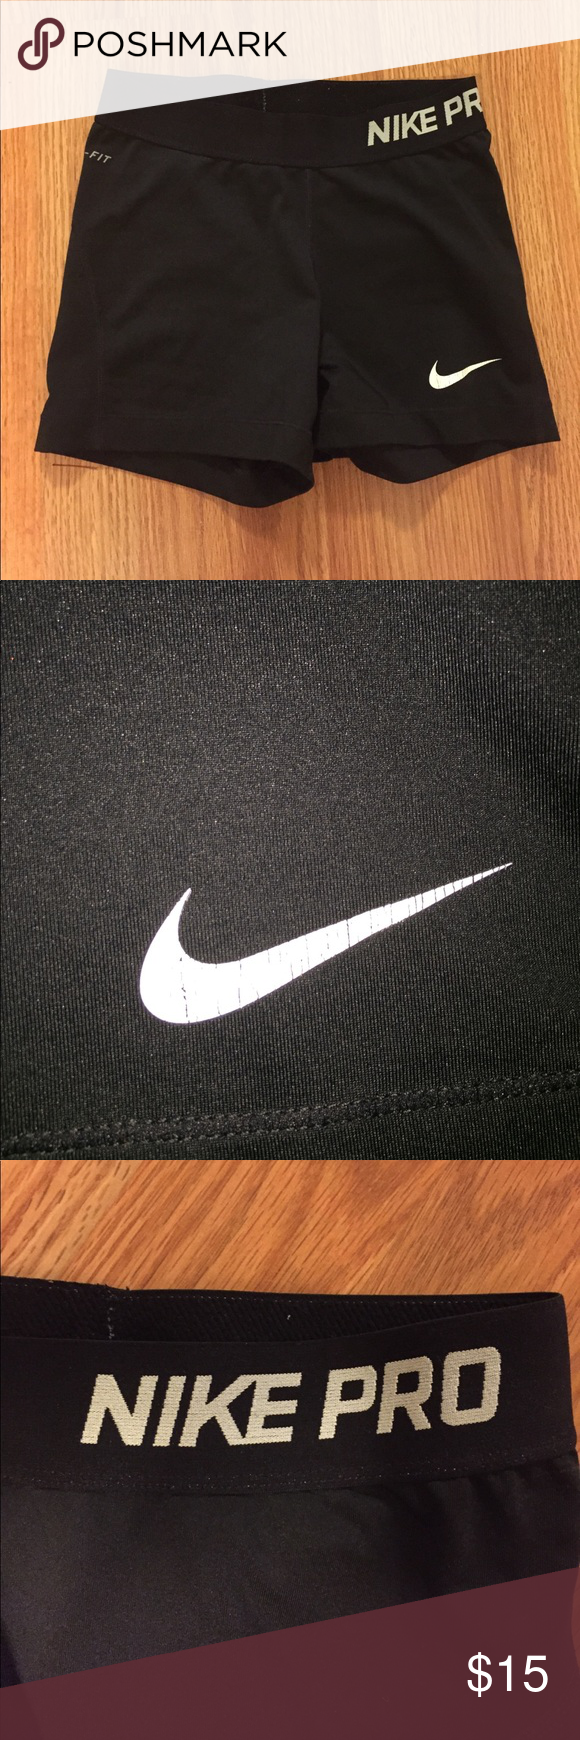 Nike Pro Spandex Black Nike Pro spandex. They are 3 inches. Thick waistband and no holes or rips. The swoosh has some cracks in the print which is shown in the picture. Nike Shorts